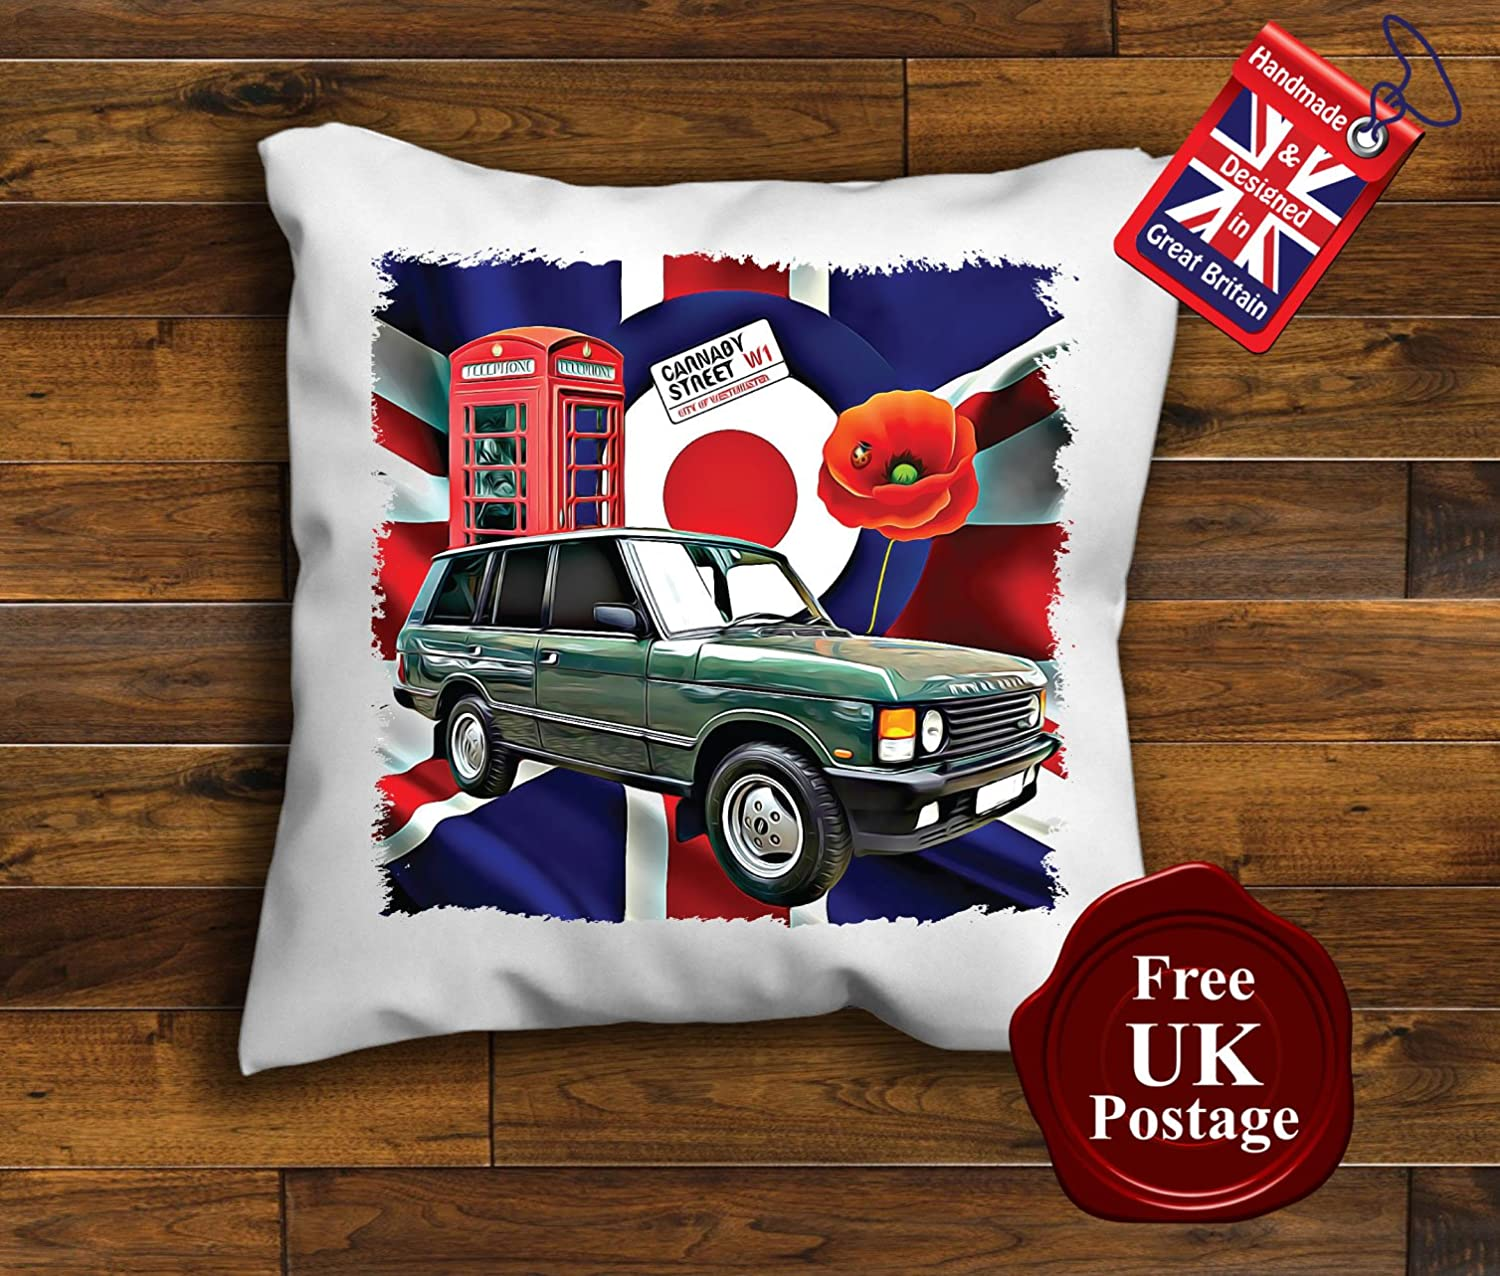 Range Rover Cushion Cover, Union Jack, Mod Target, Poppy, Phone Box, Choice of sizes, Handmade 10 to 20 inch See Description